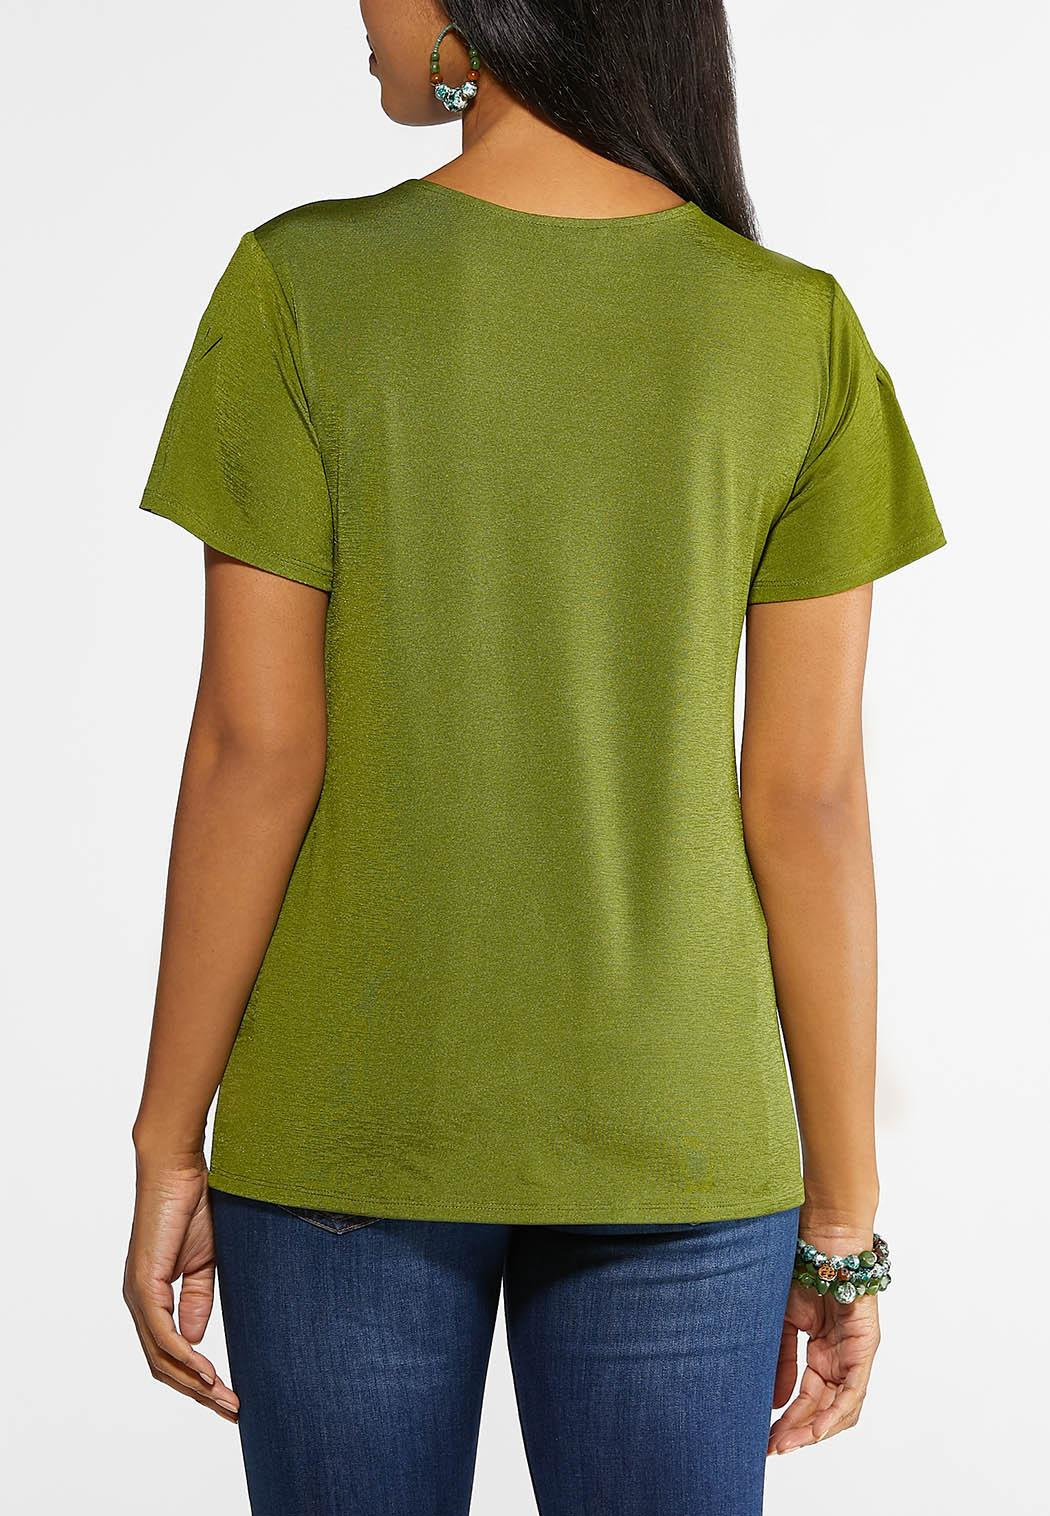 Pleated Flutter Sleeve Top (Item #43943426)